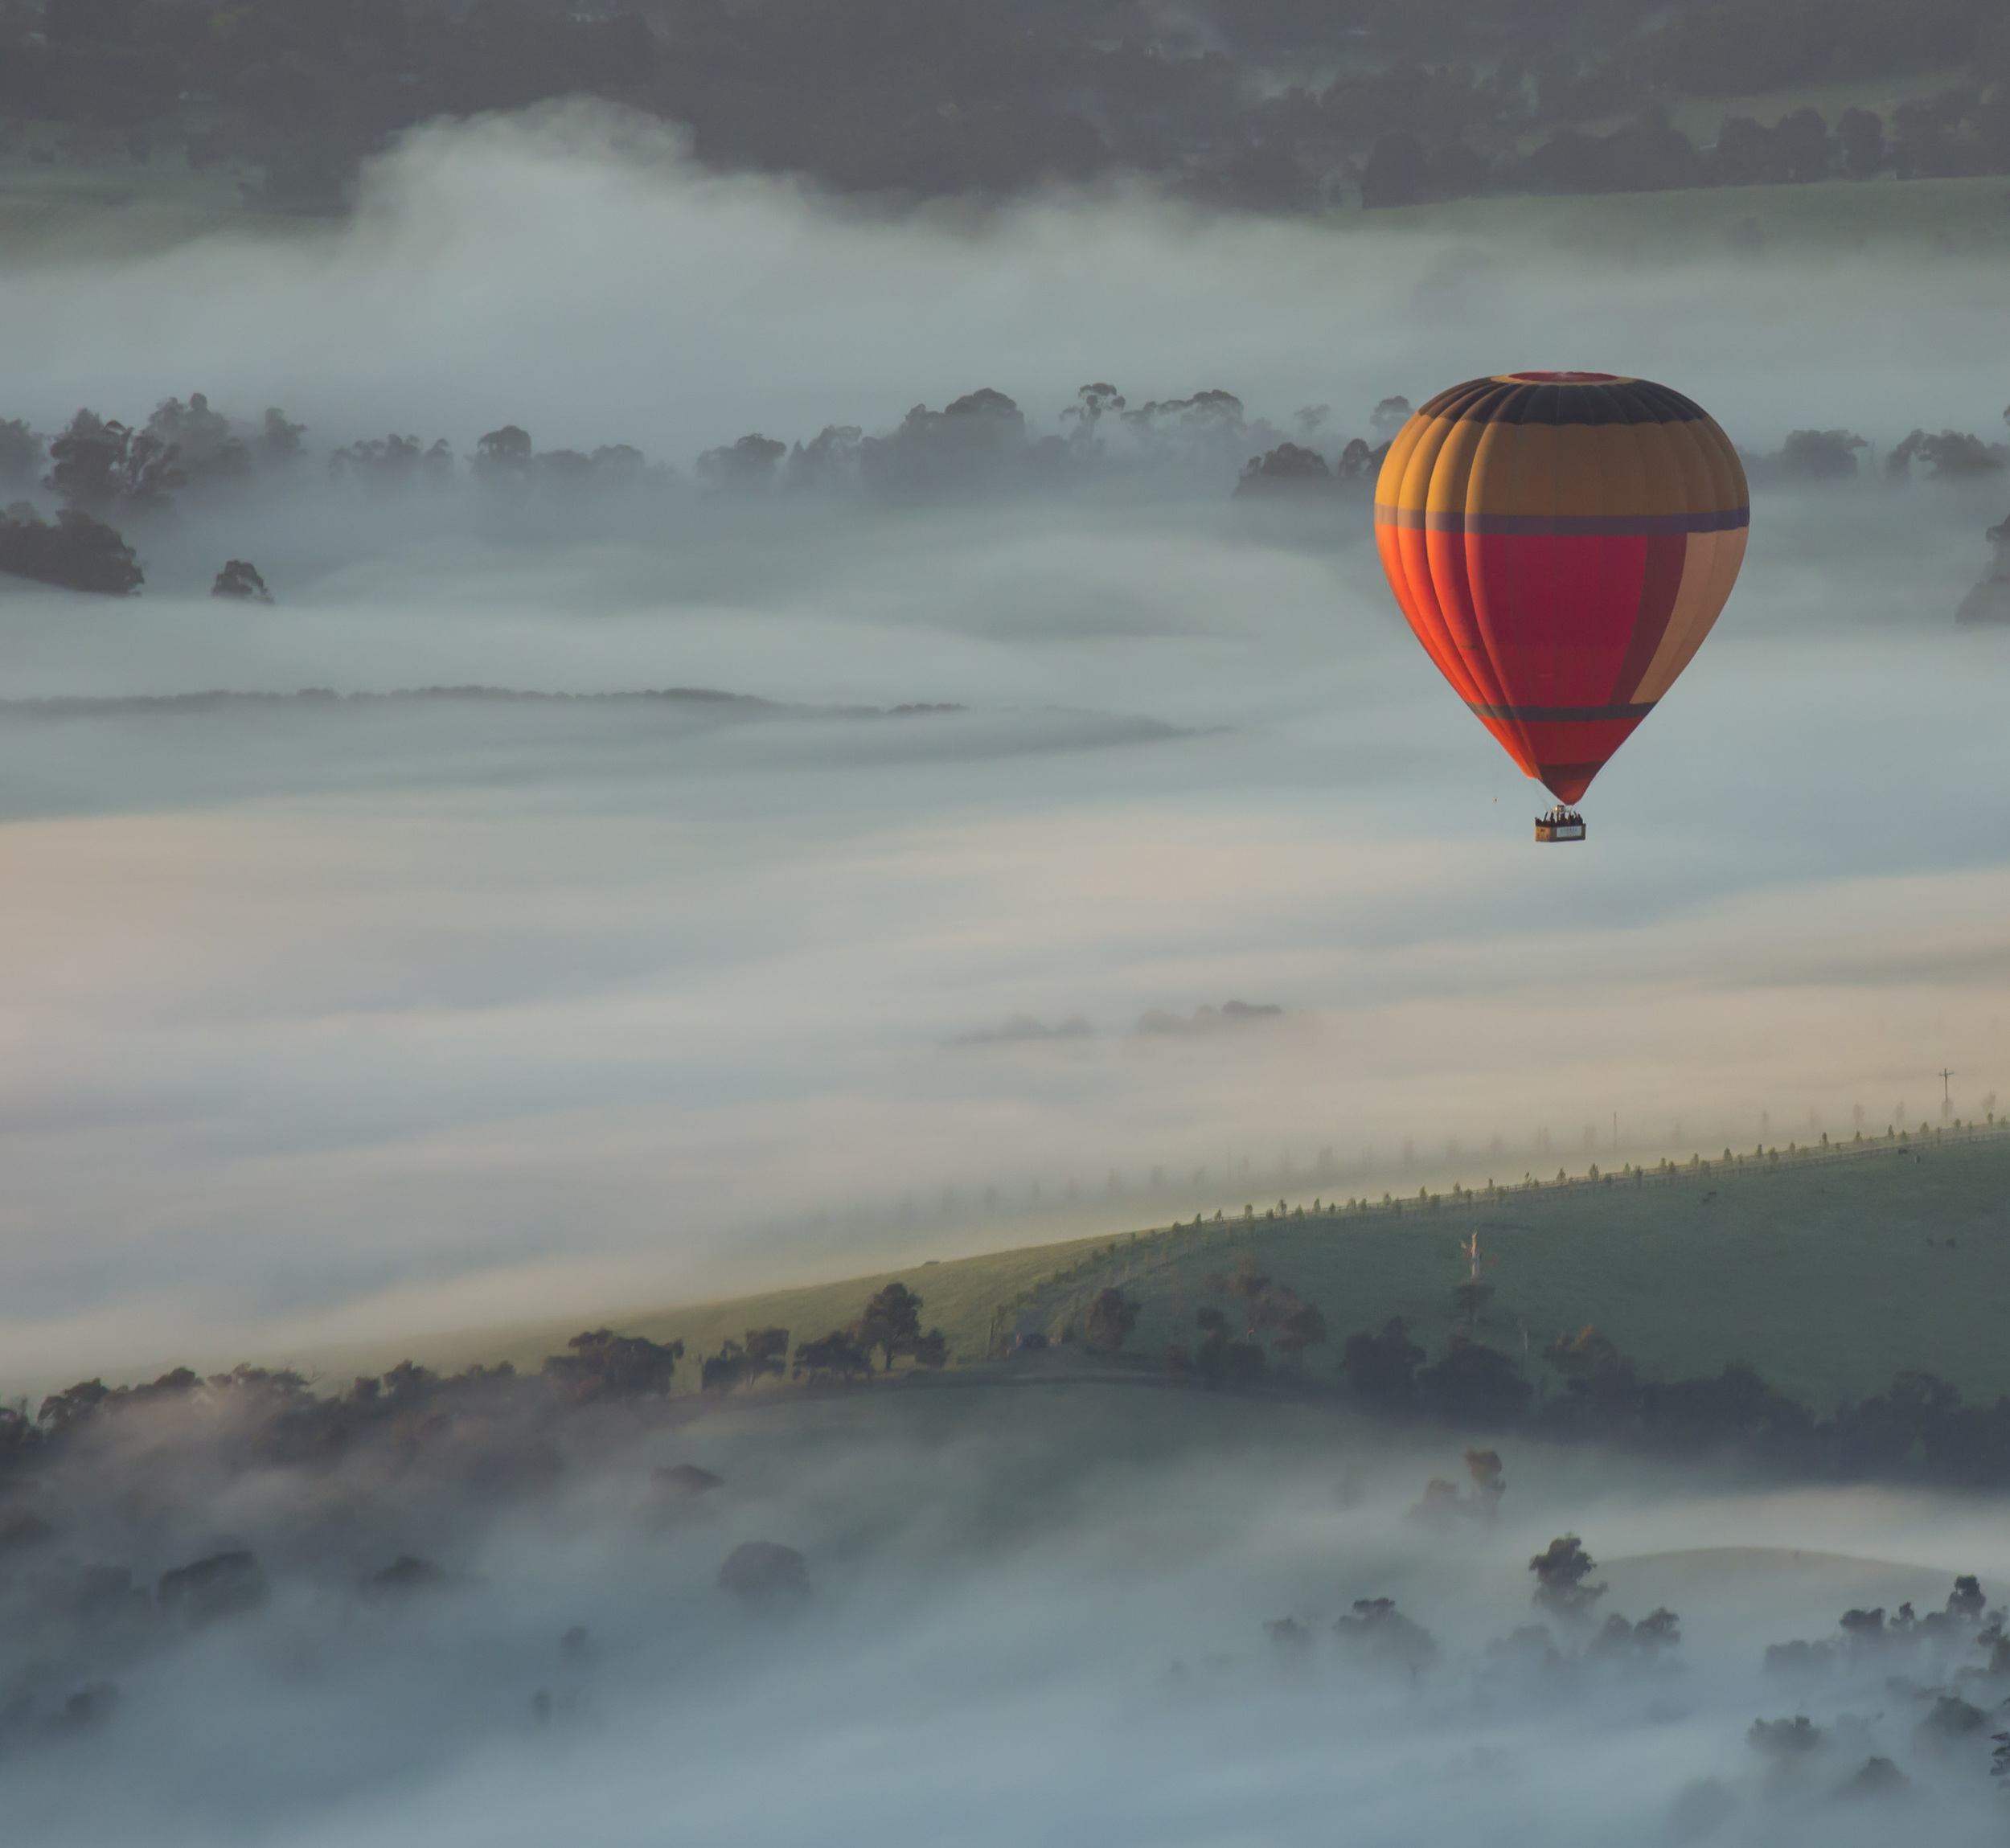 More information about flights over the Yarra Valley......